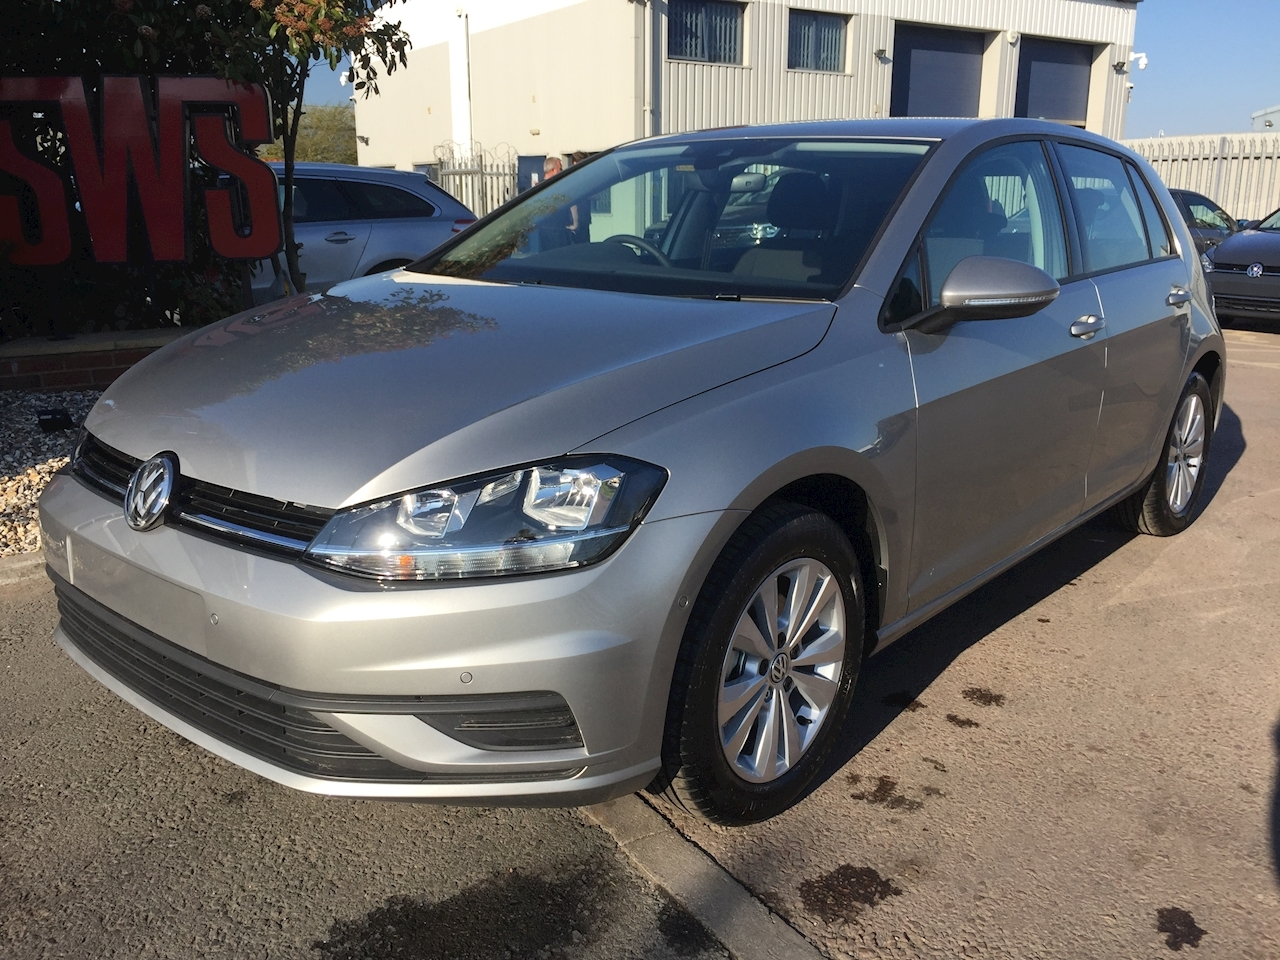 Golf SE 150PS 1.4 TSI DSG - 1.4 Automatic Petrol